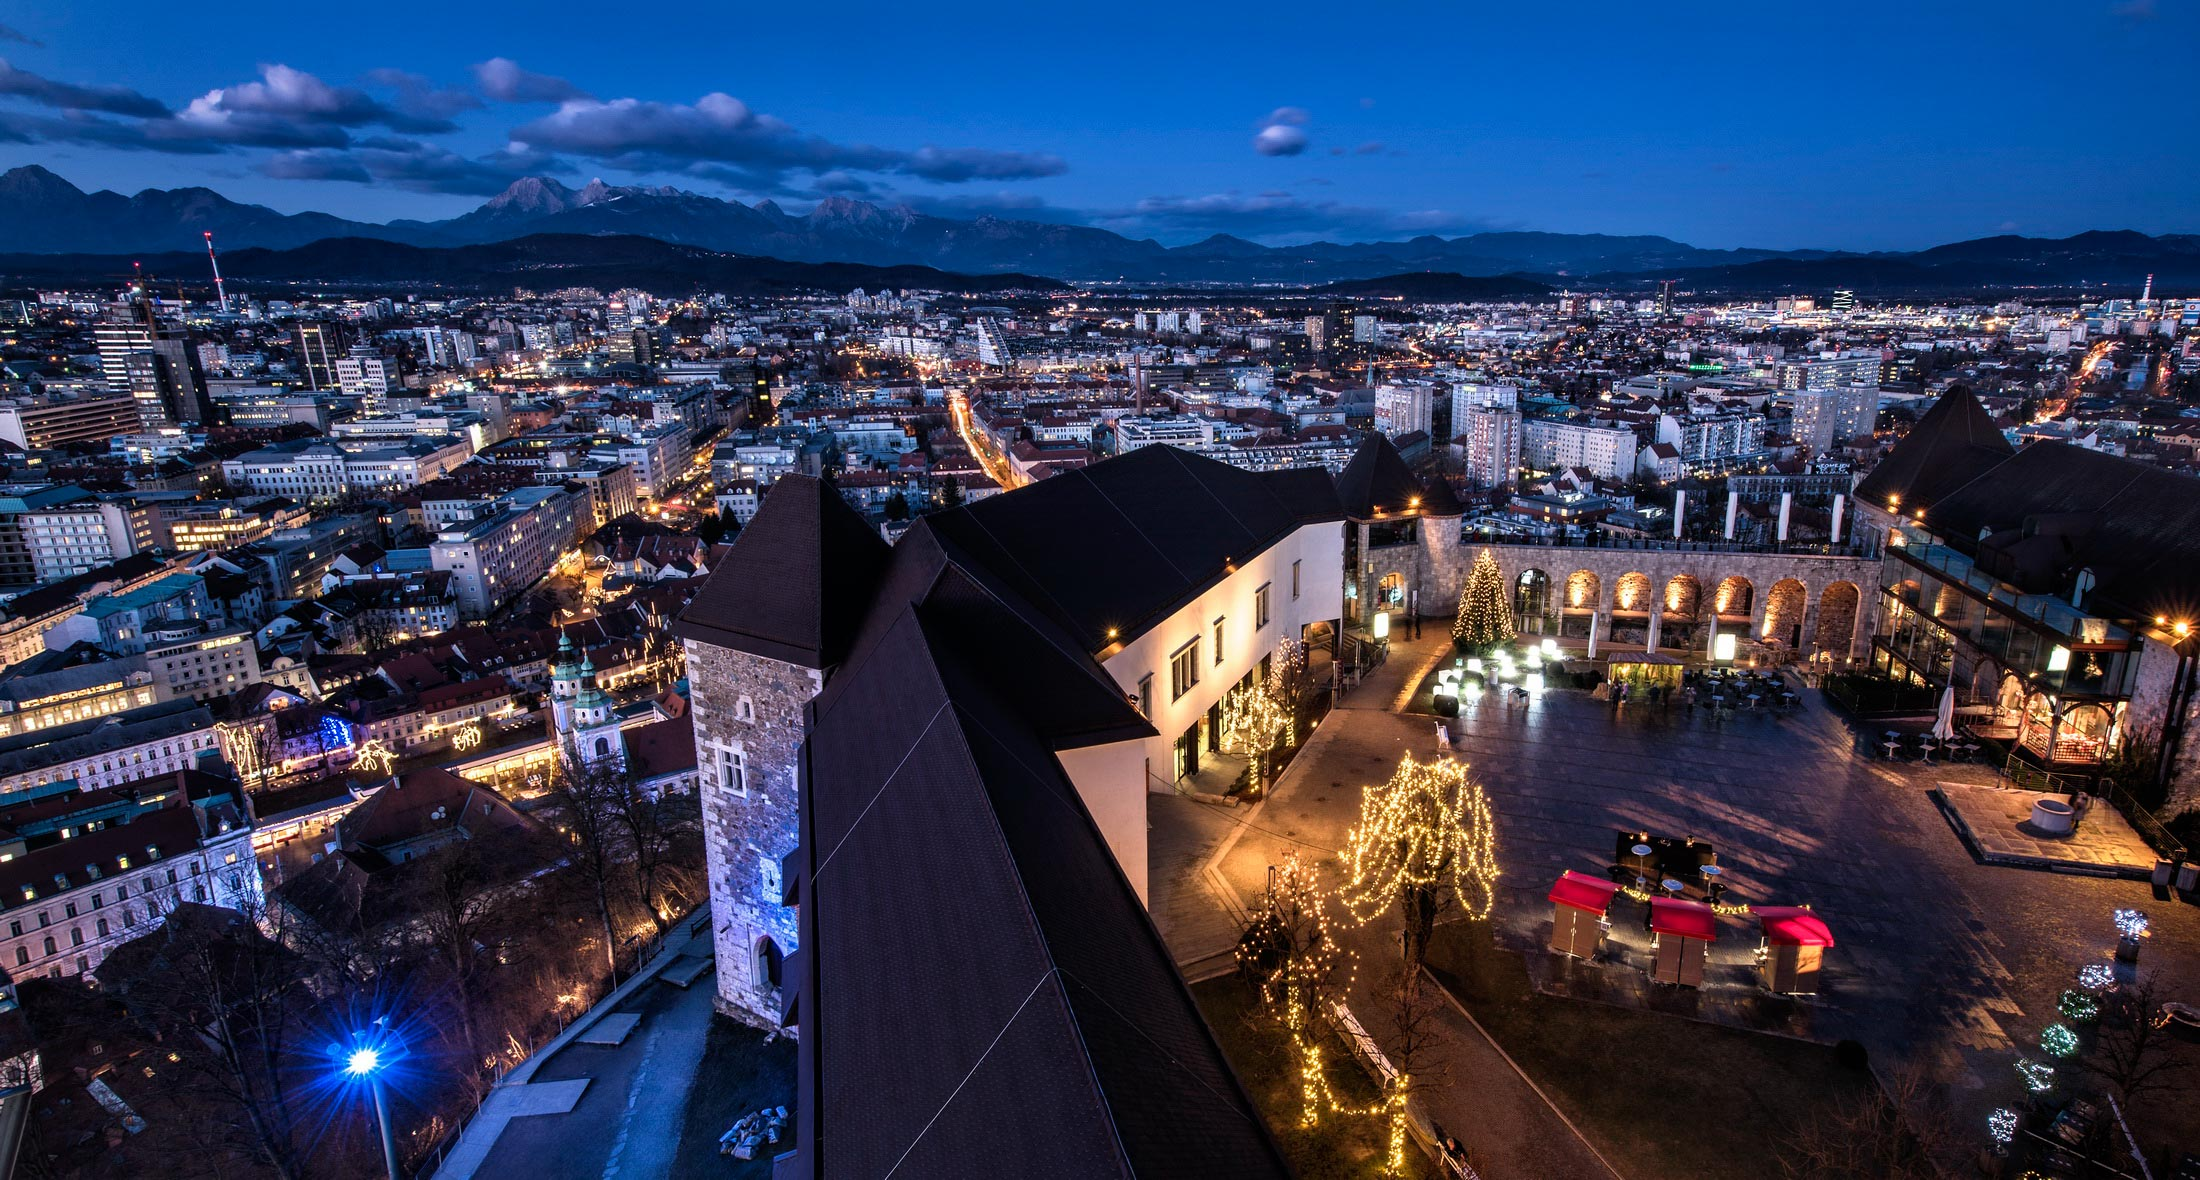 Ljubljana castle by nght. Photo by Arne Hodalic